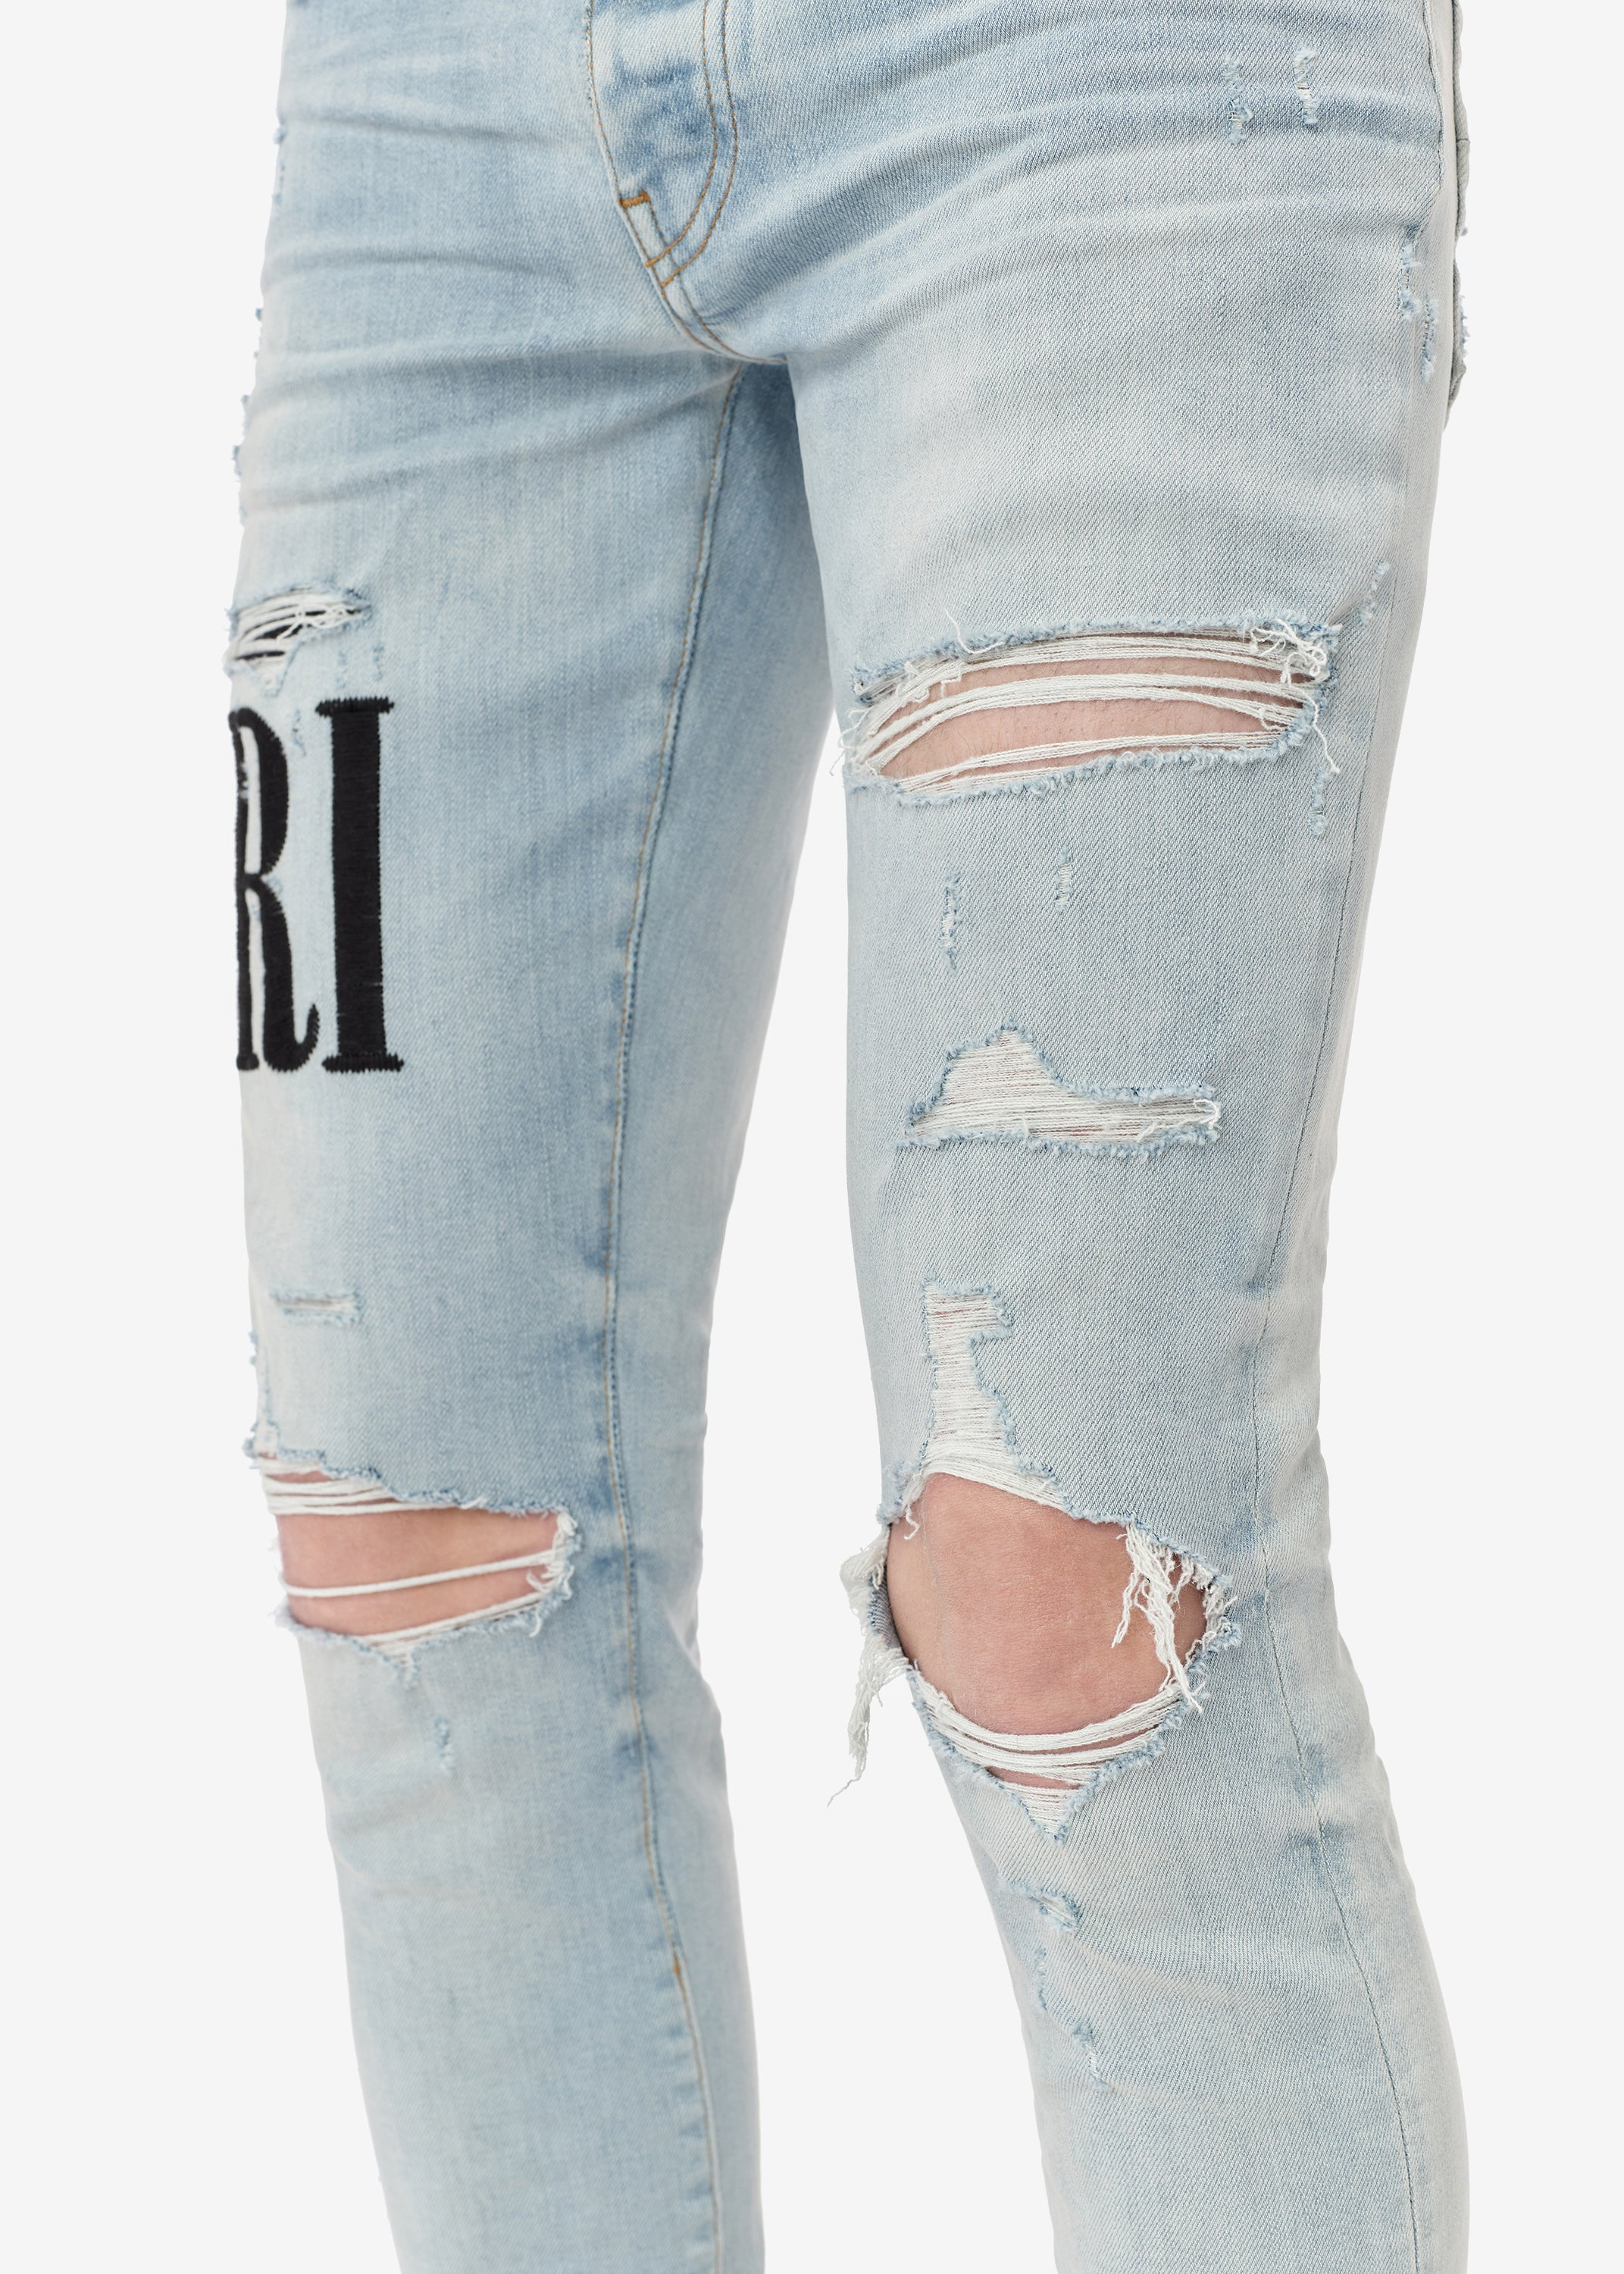 embroidered-amiri-jean-super-light-indigo-image-4